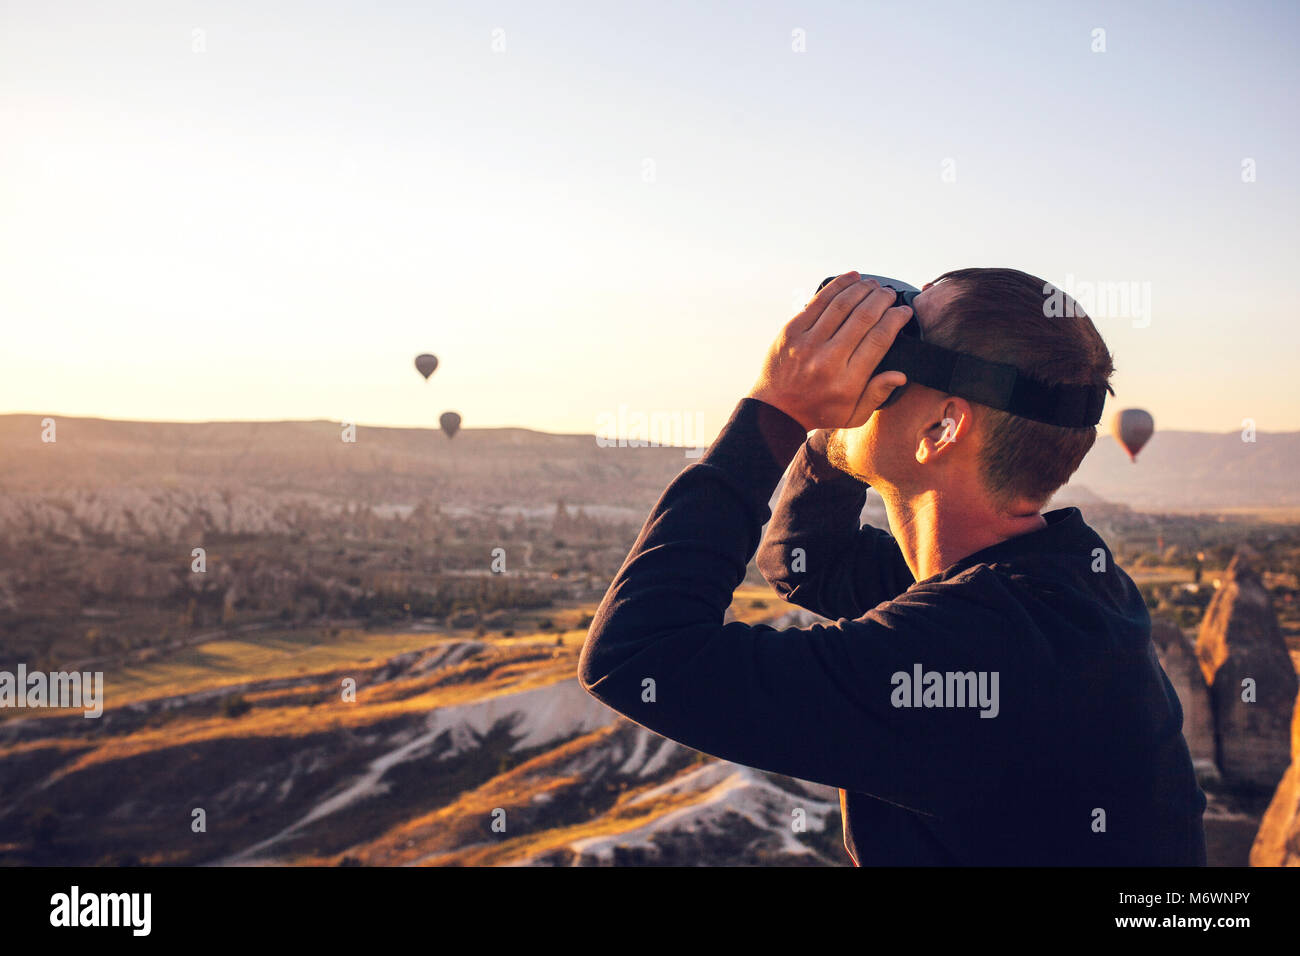 The man with glasses of virtual reality. Future technology concept. Modern imaging technology. - Stock Image